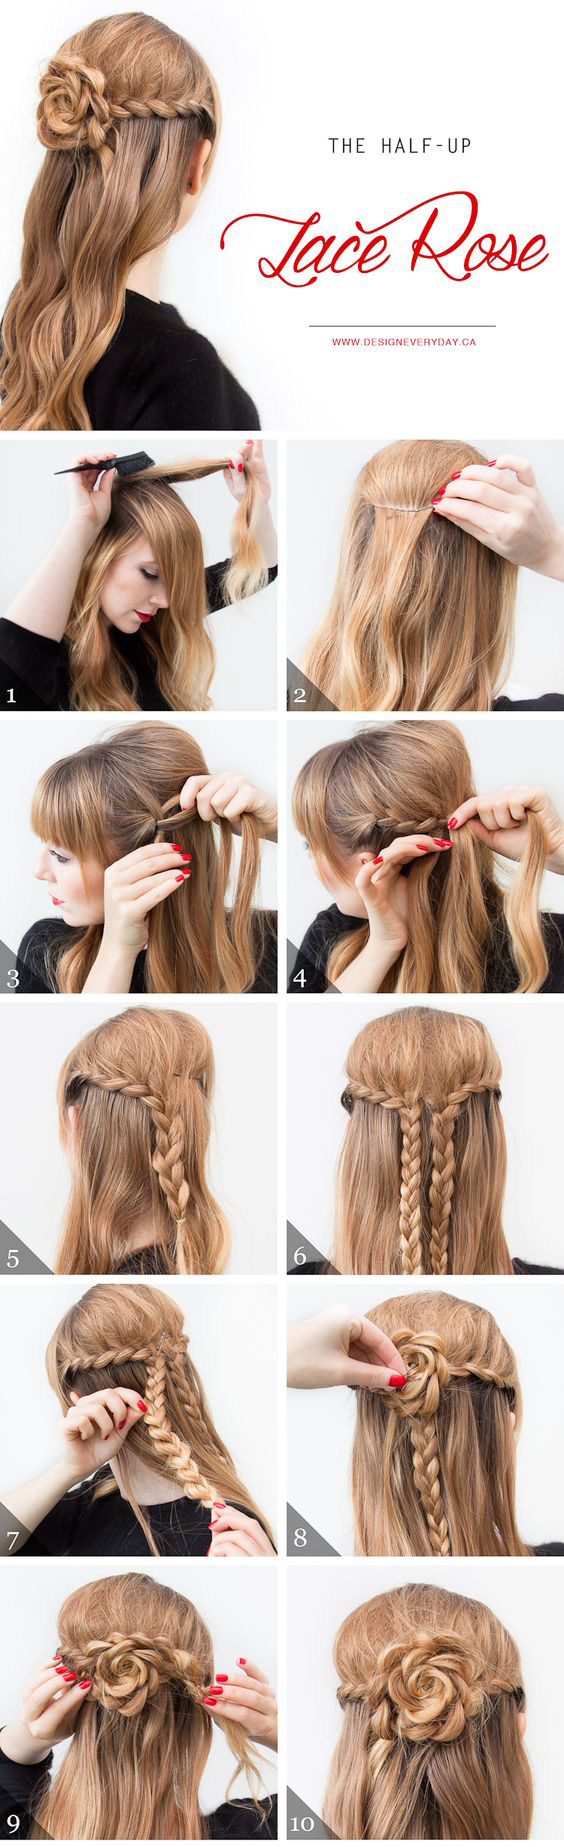 50 Amazing Long Hairstyles & Cuts 2018 - Easy Layered Long ...